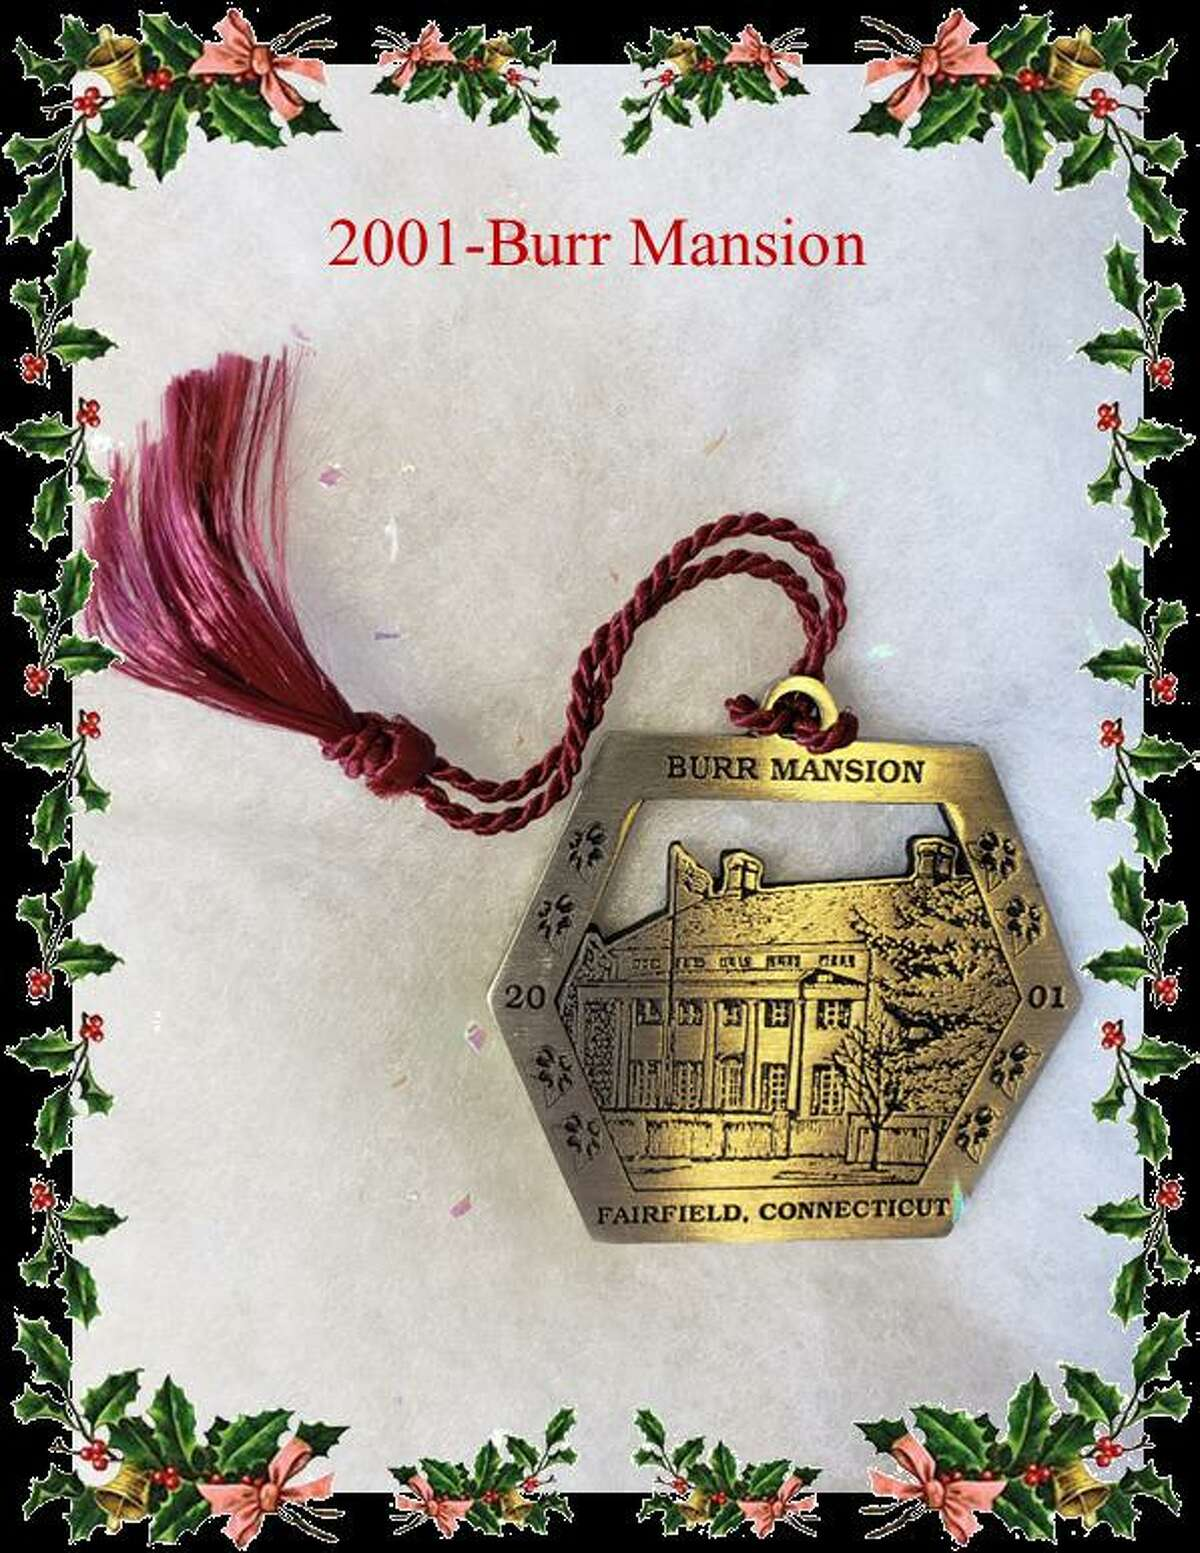 Six different Holiday ornaments from the company Woodbury Pewter, and of historic landmark buildings in Fairfield are available for purchase from the Fairfield Chamber of Commerce. The ornaments are $20 each, or $100 for a set of six ornaments. Pictured is one of the ornaments, the 2001 Burr Mansion.